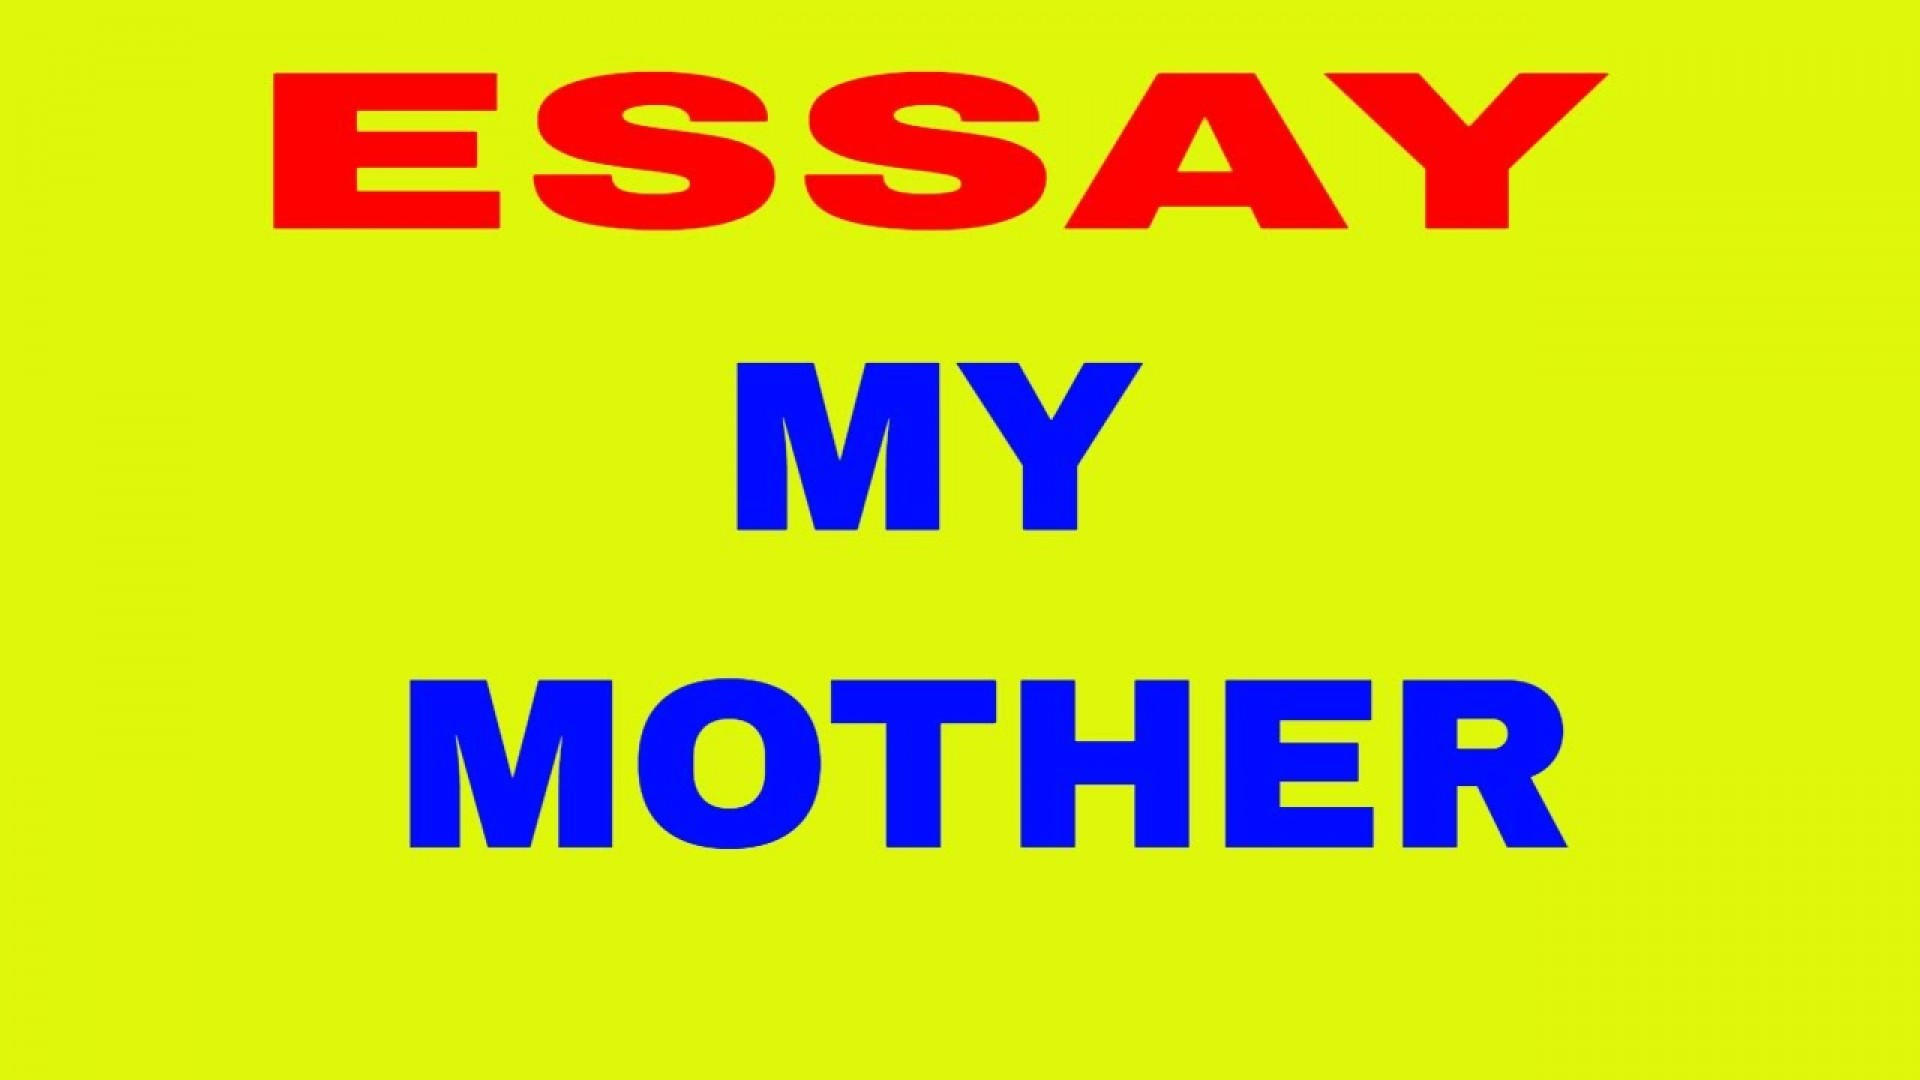 014 Maxresdefault Essay Example My Astounding Mom On Mother In Hindi For Class 5 The Moment Of Success Narrative 1 1920